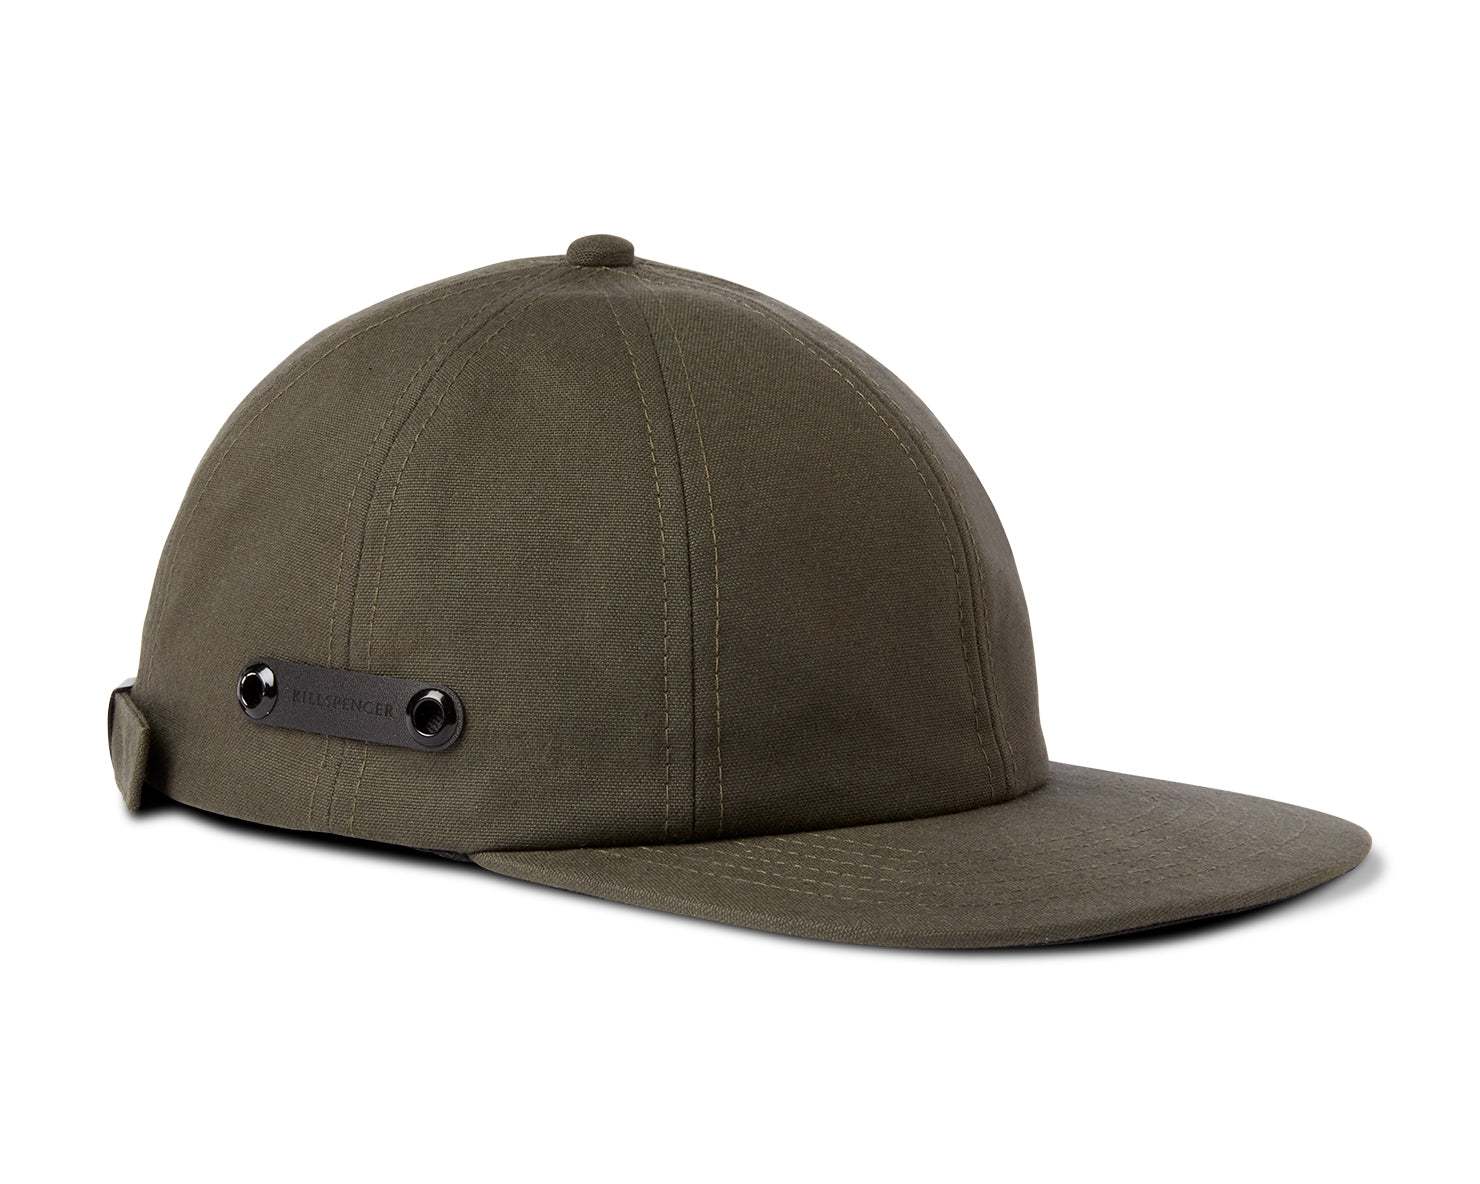 8 PANEL HAT | KILLSPENCER® - Olive Drab Canvas